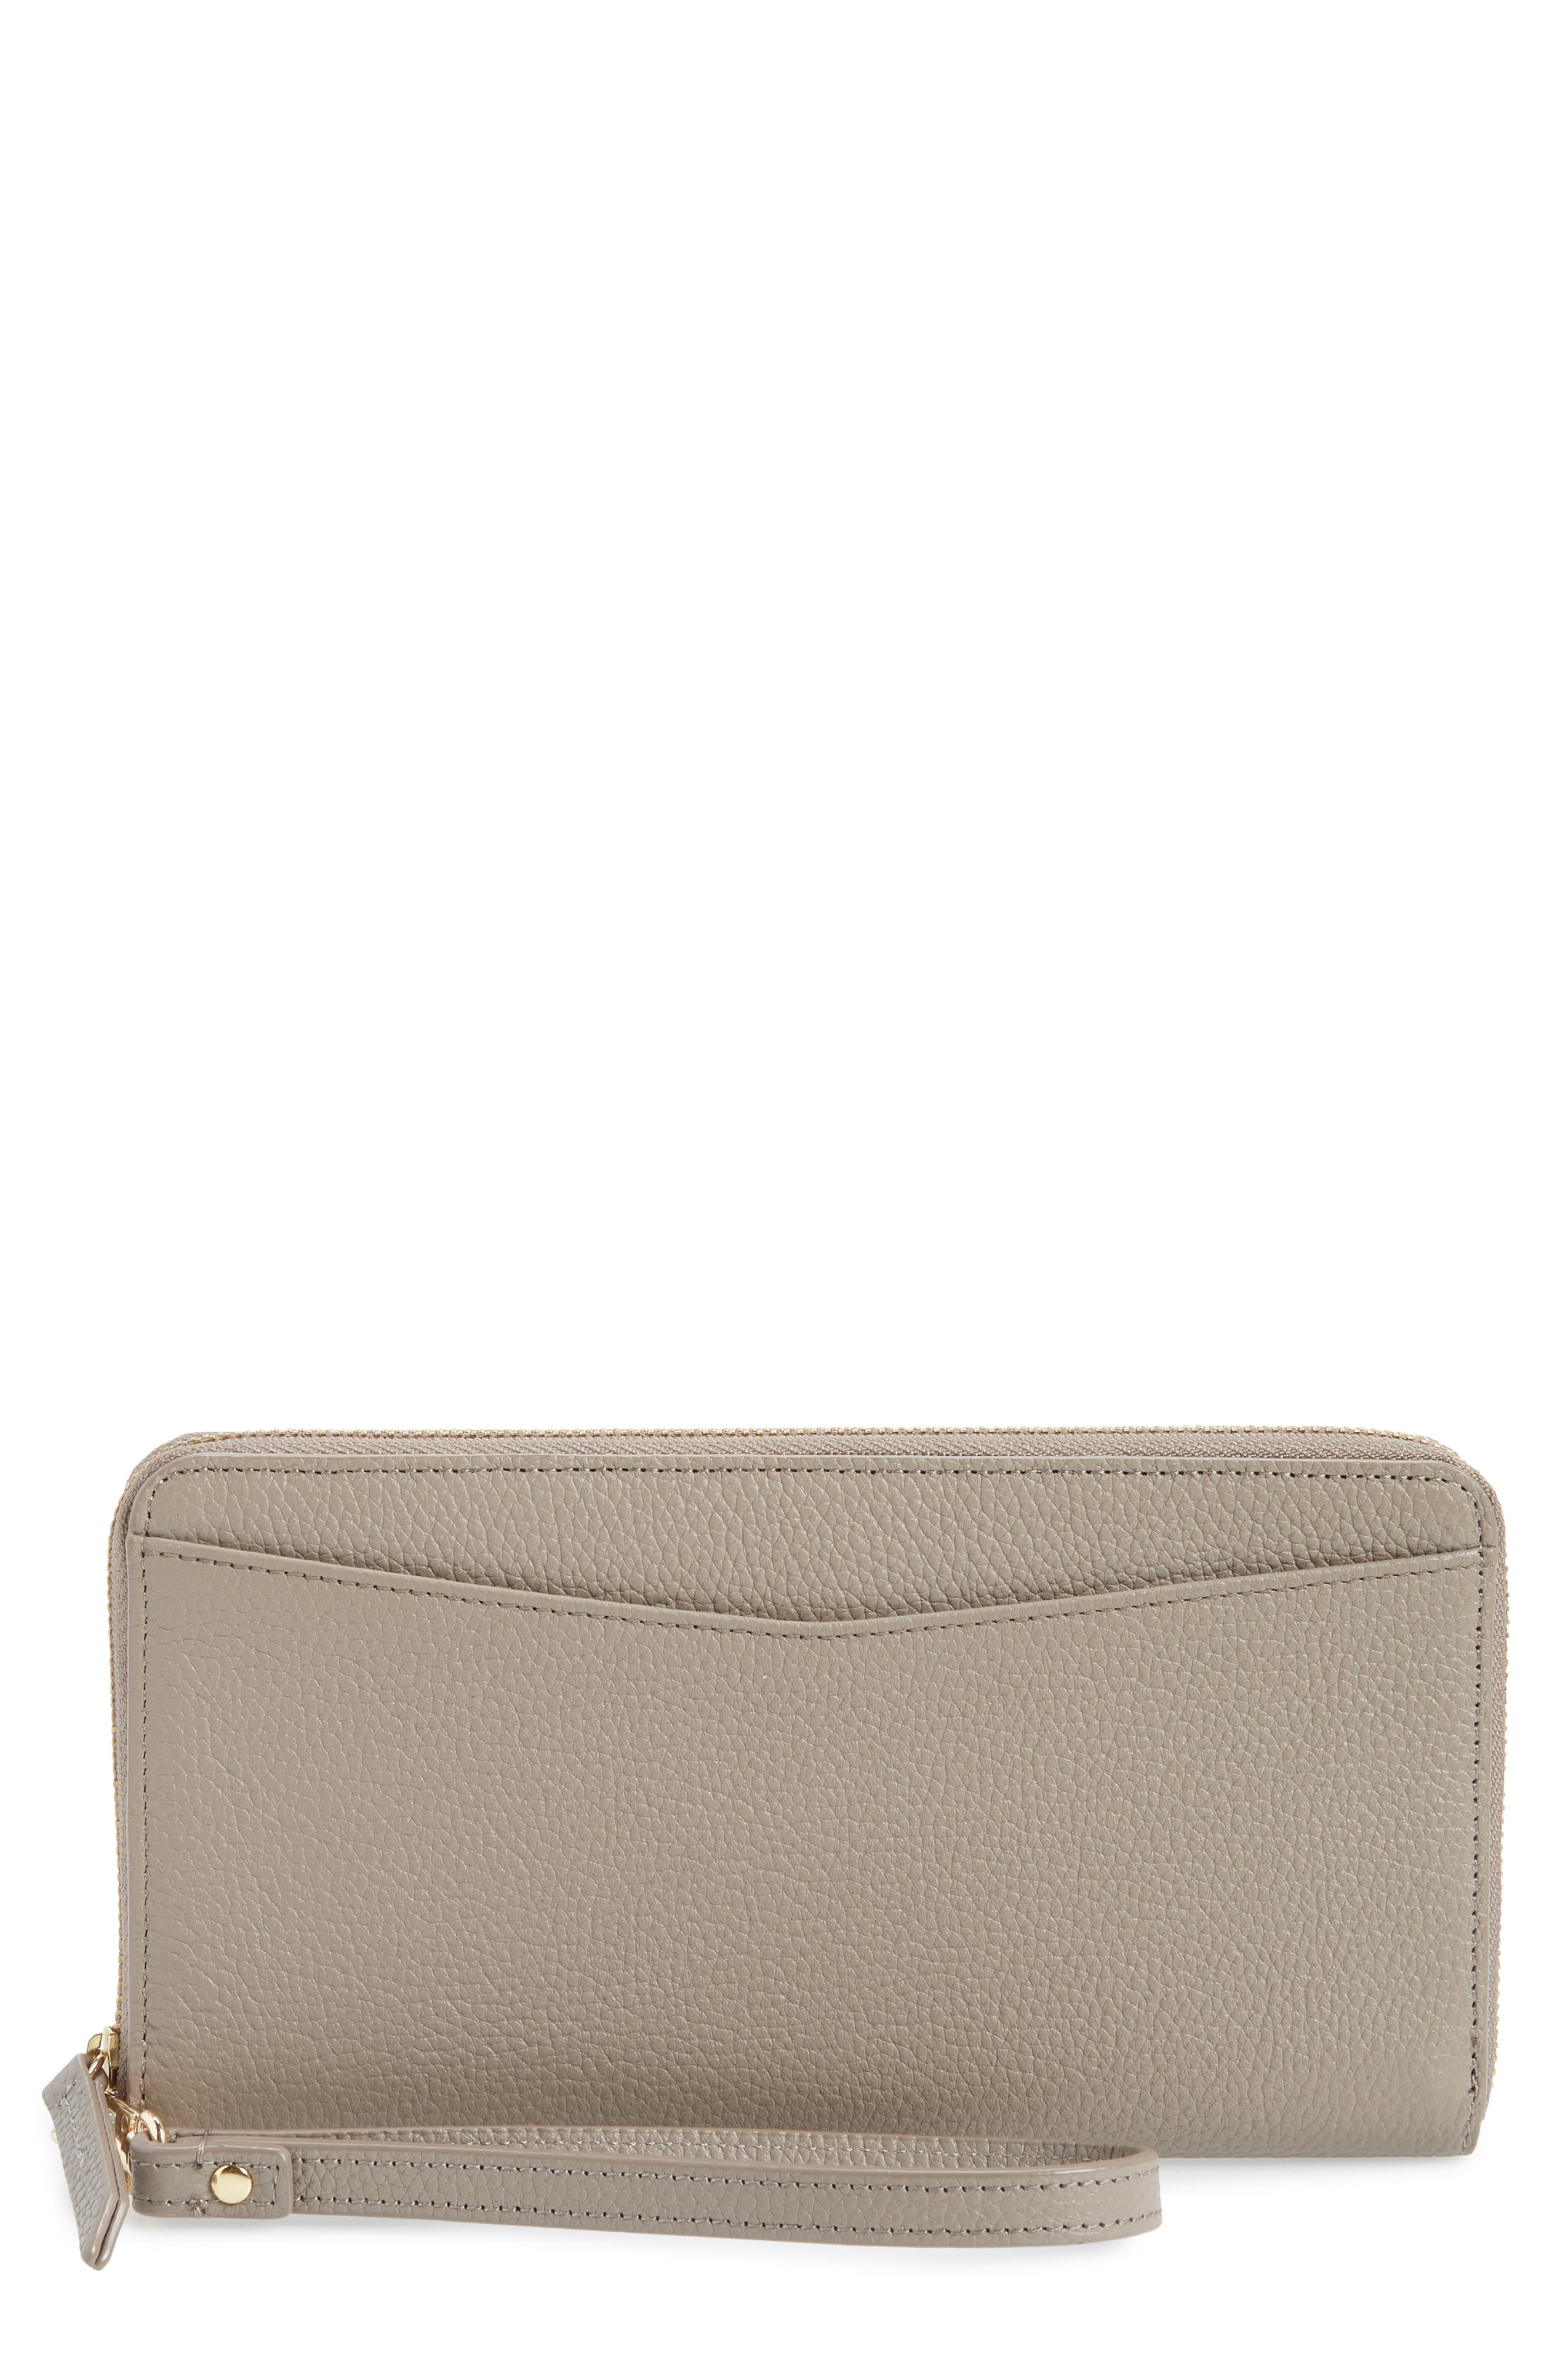 NORDSTROM, Zip Around Leather Continental Wallet, Main thumbnail 1, color, GREY TAUPE